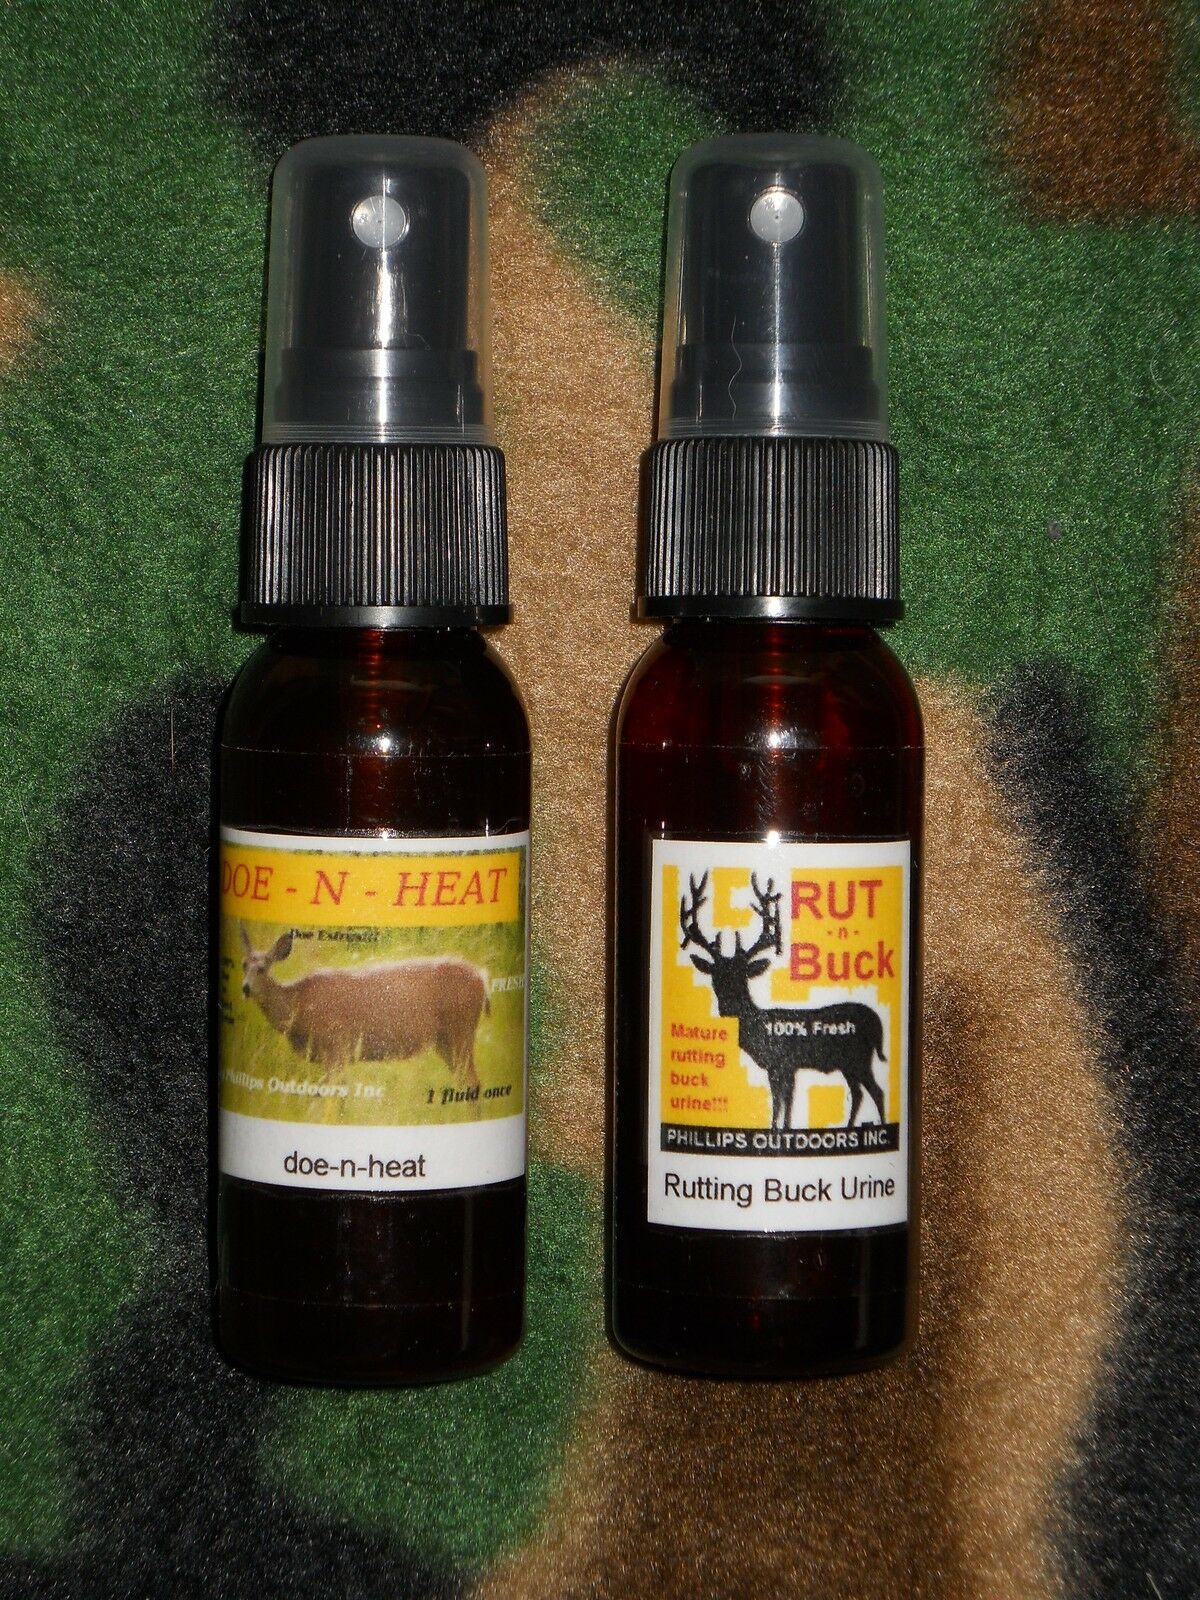 Rut Combo Doe -n- Heat Buck Lure 1oz. & Rut-n-buck With Tarsal Gland 1oz.